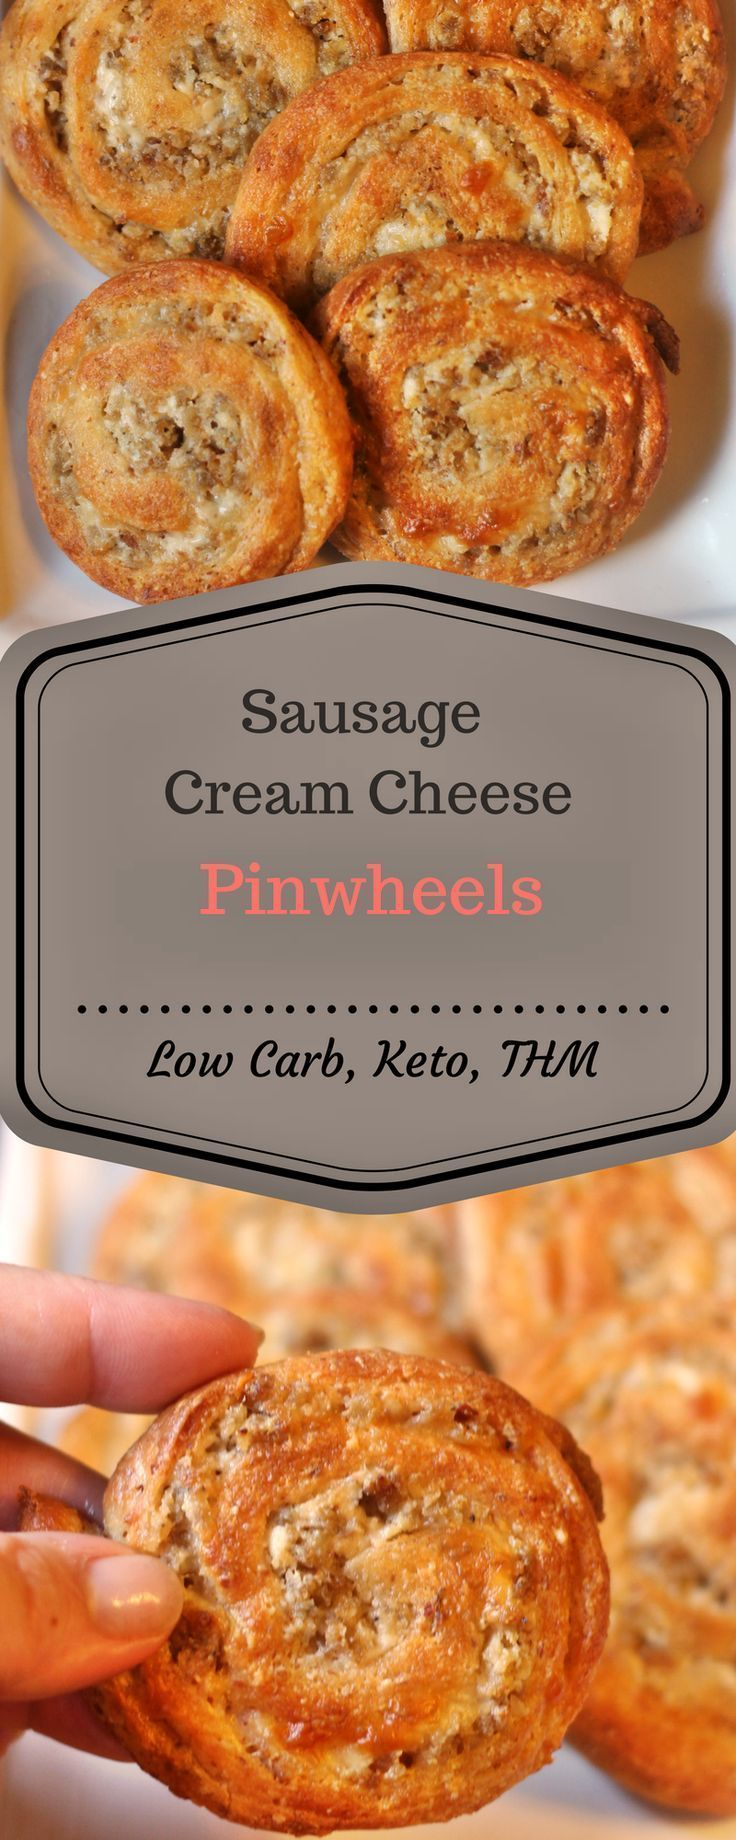 These low carb pinwheels are gluten and grain free They are an awesom Keto and